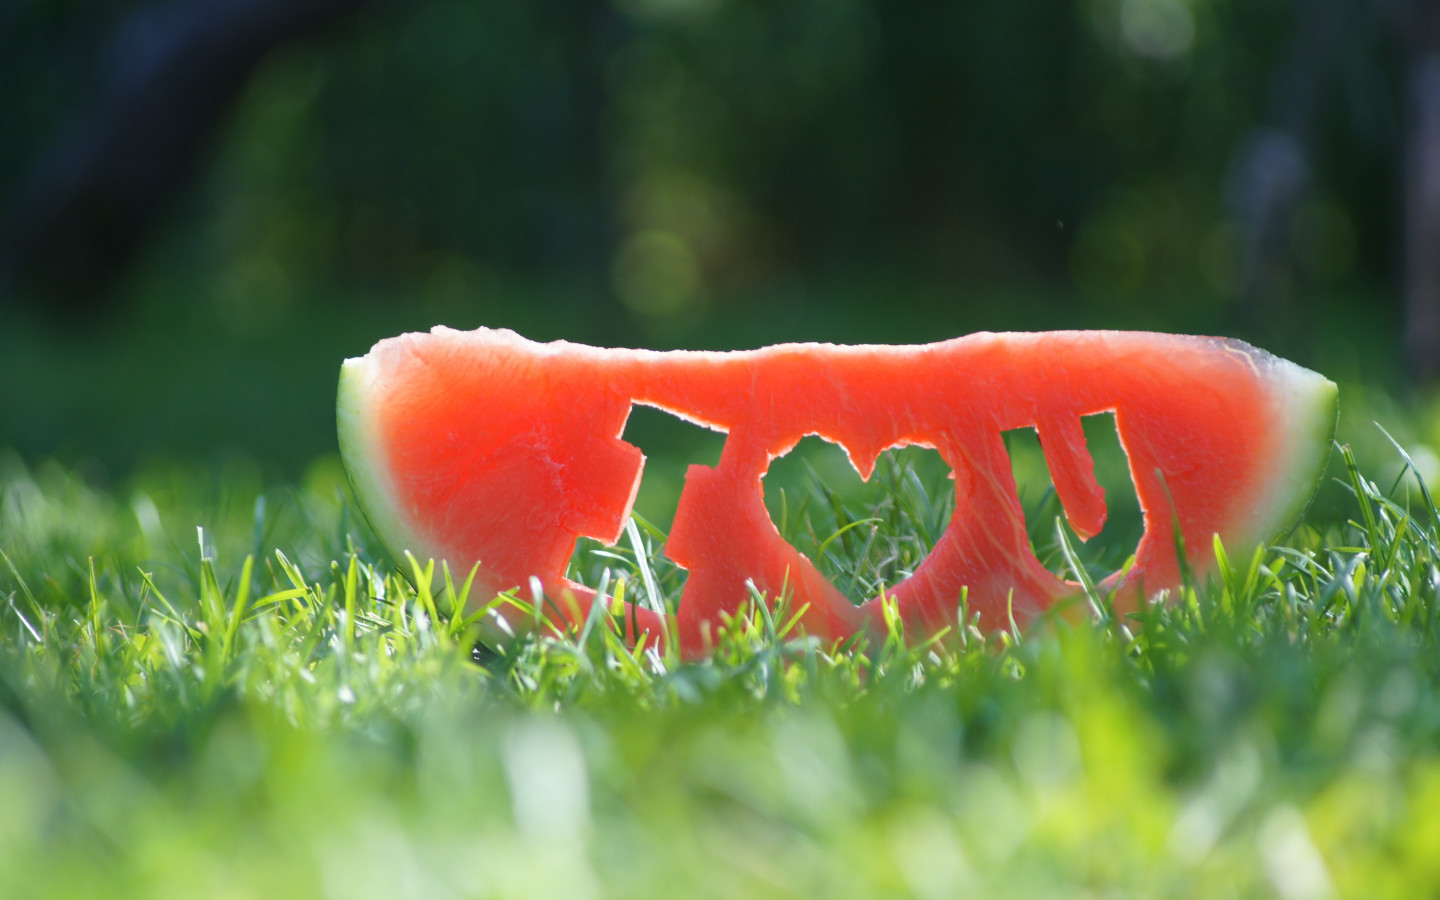 I love you through a watermelon slice wallpaper 1440x900